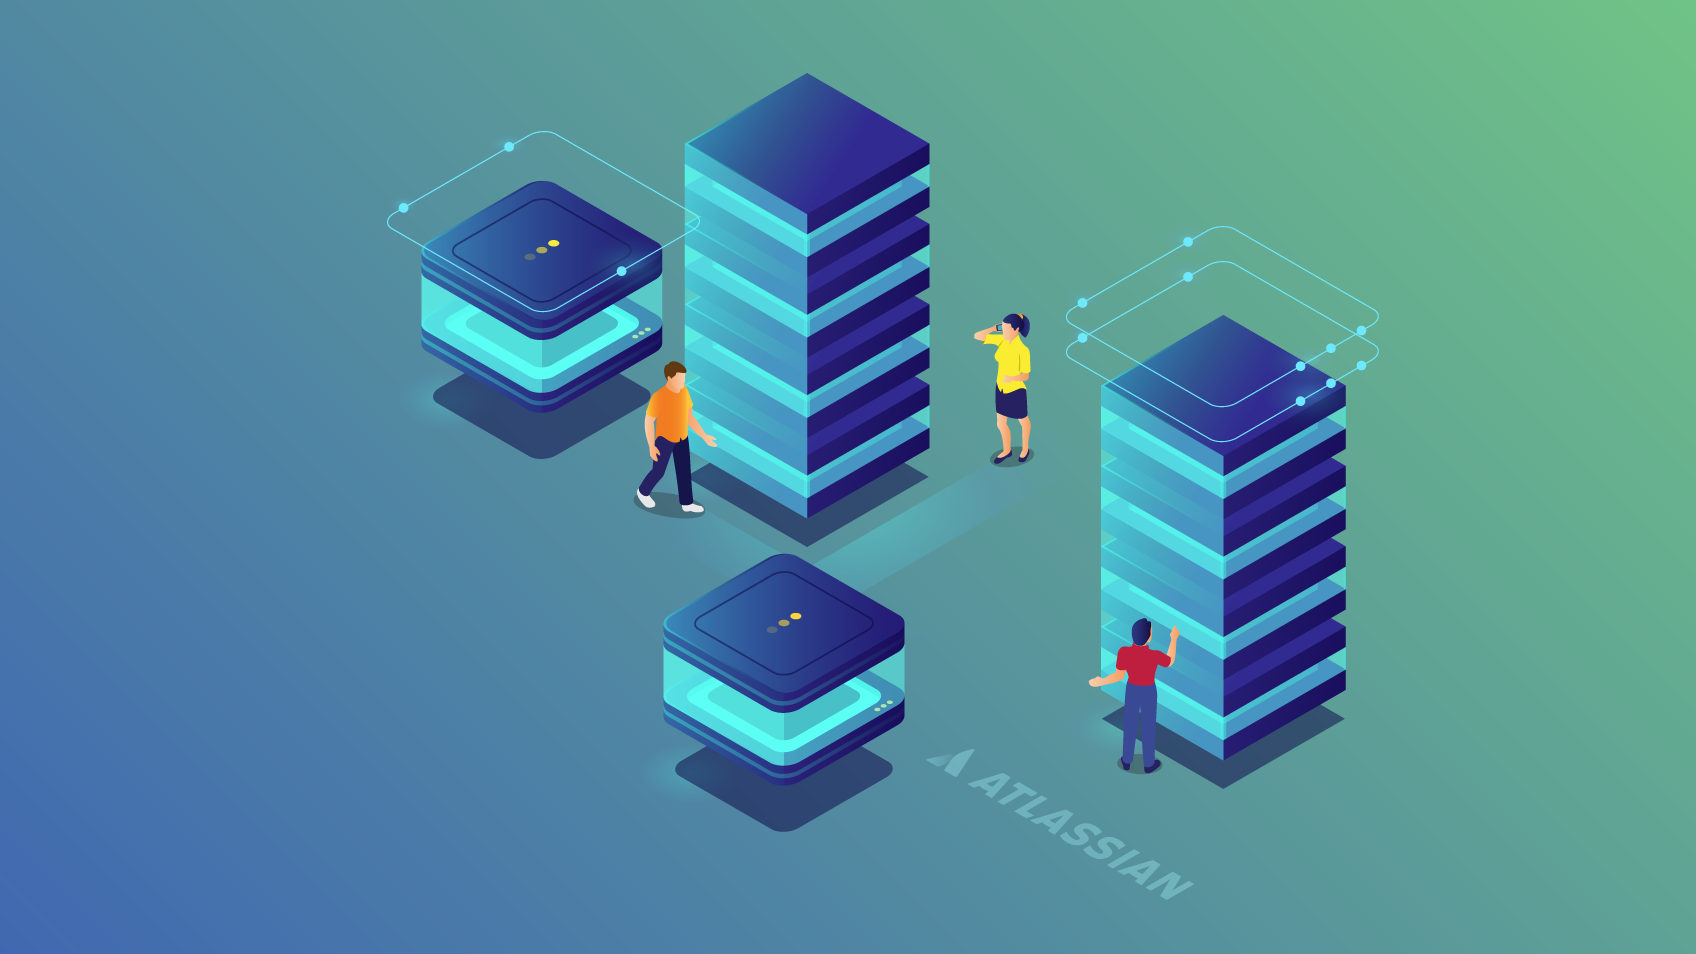 Atlassian: from Server to Cloud with no risks